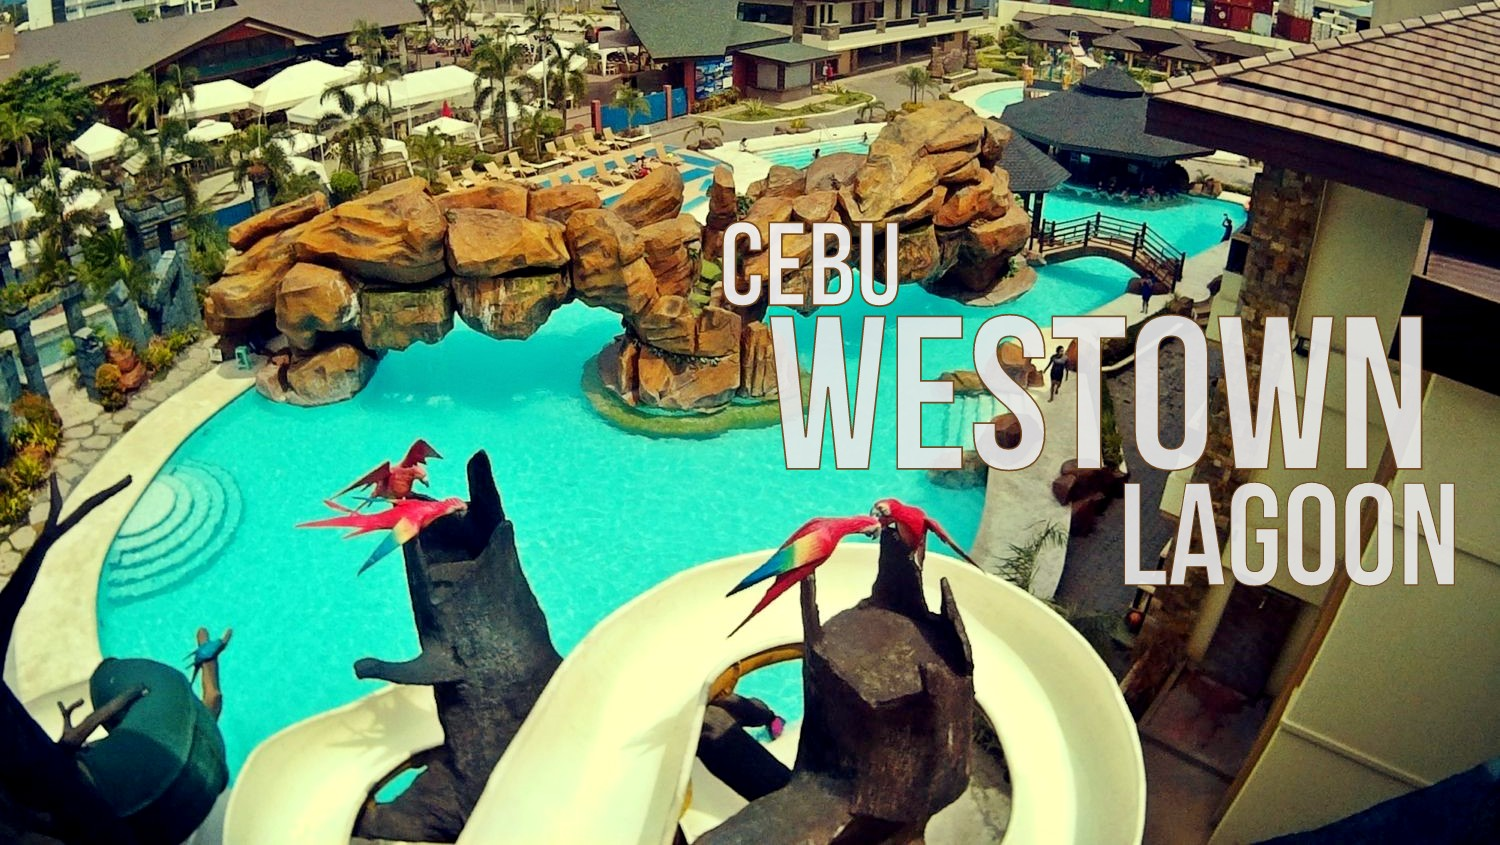 Cebu Westown Lagoon: An Oasis in the Metro